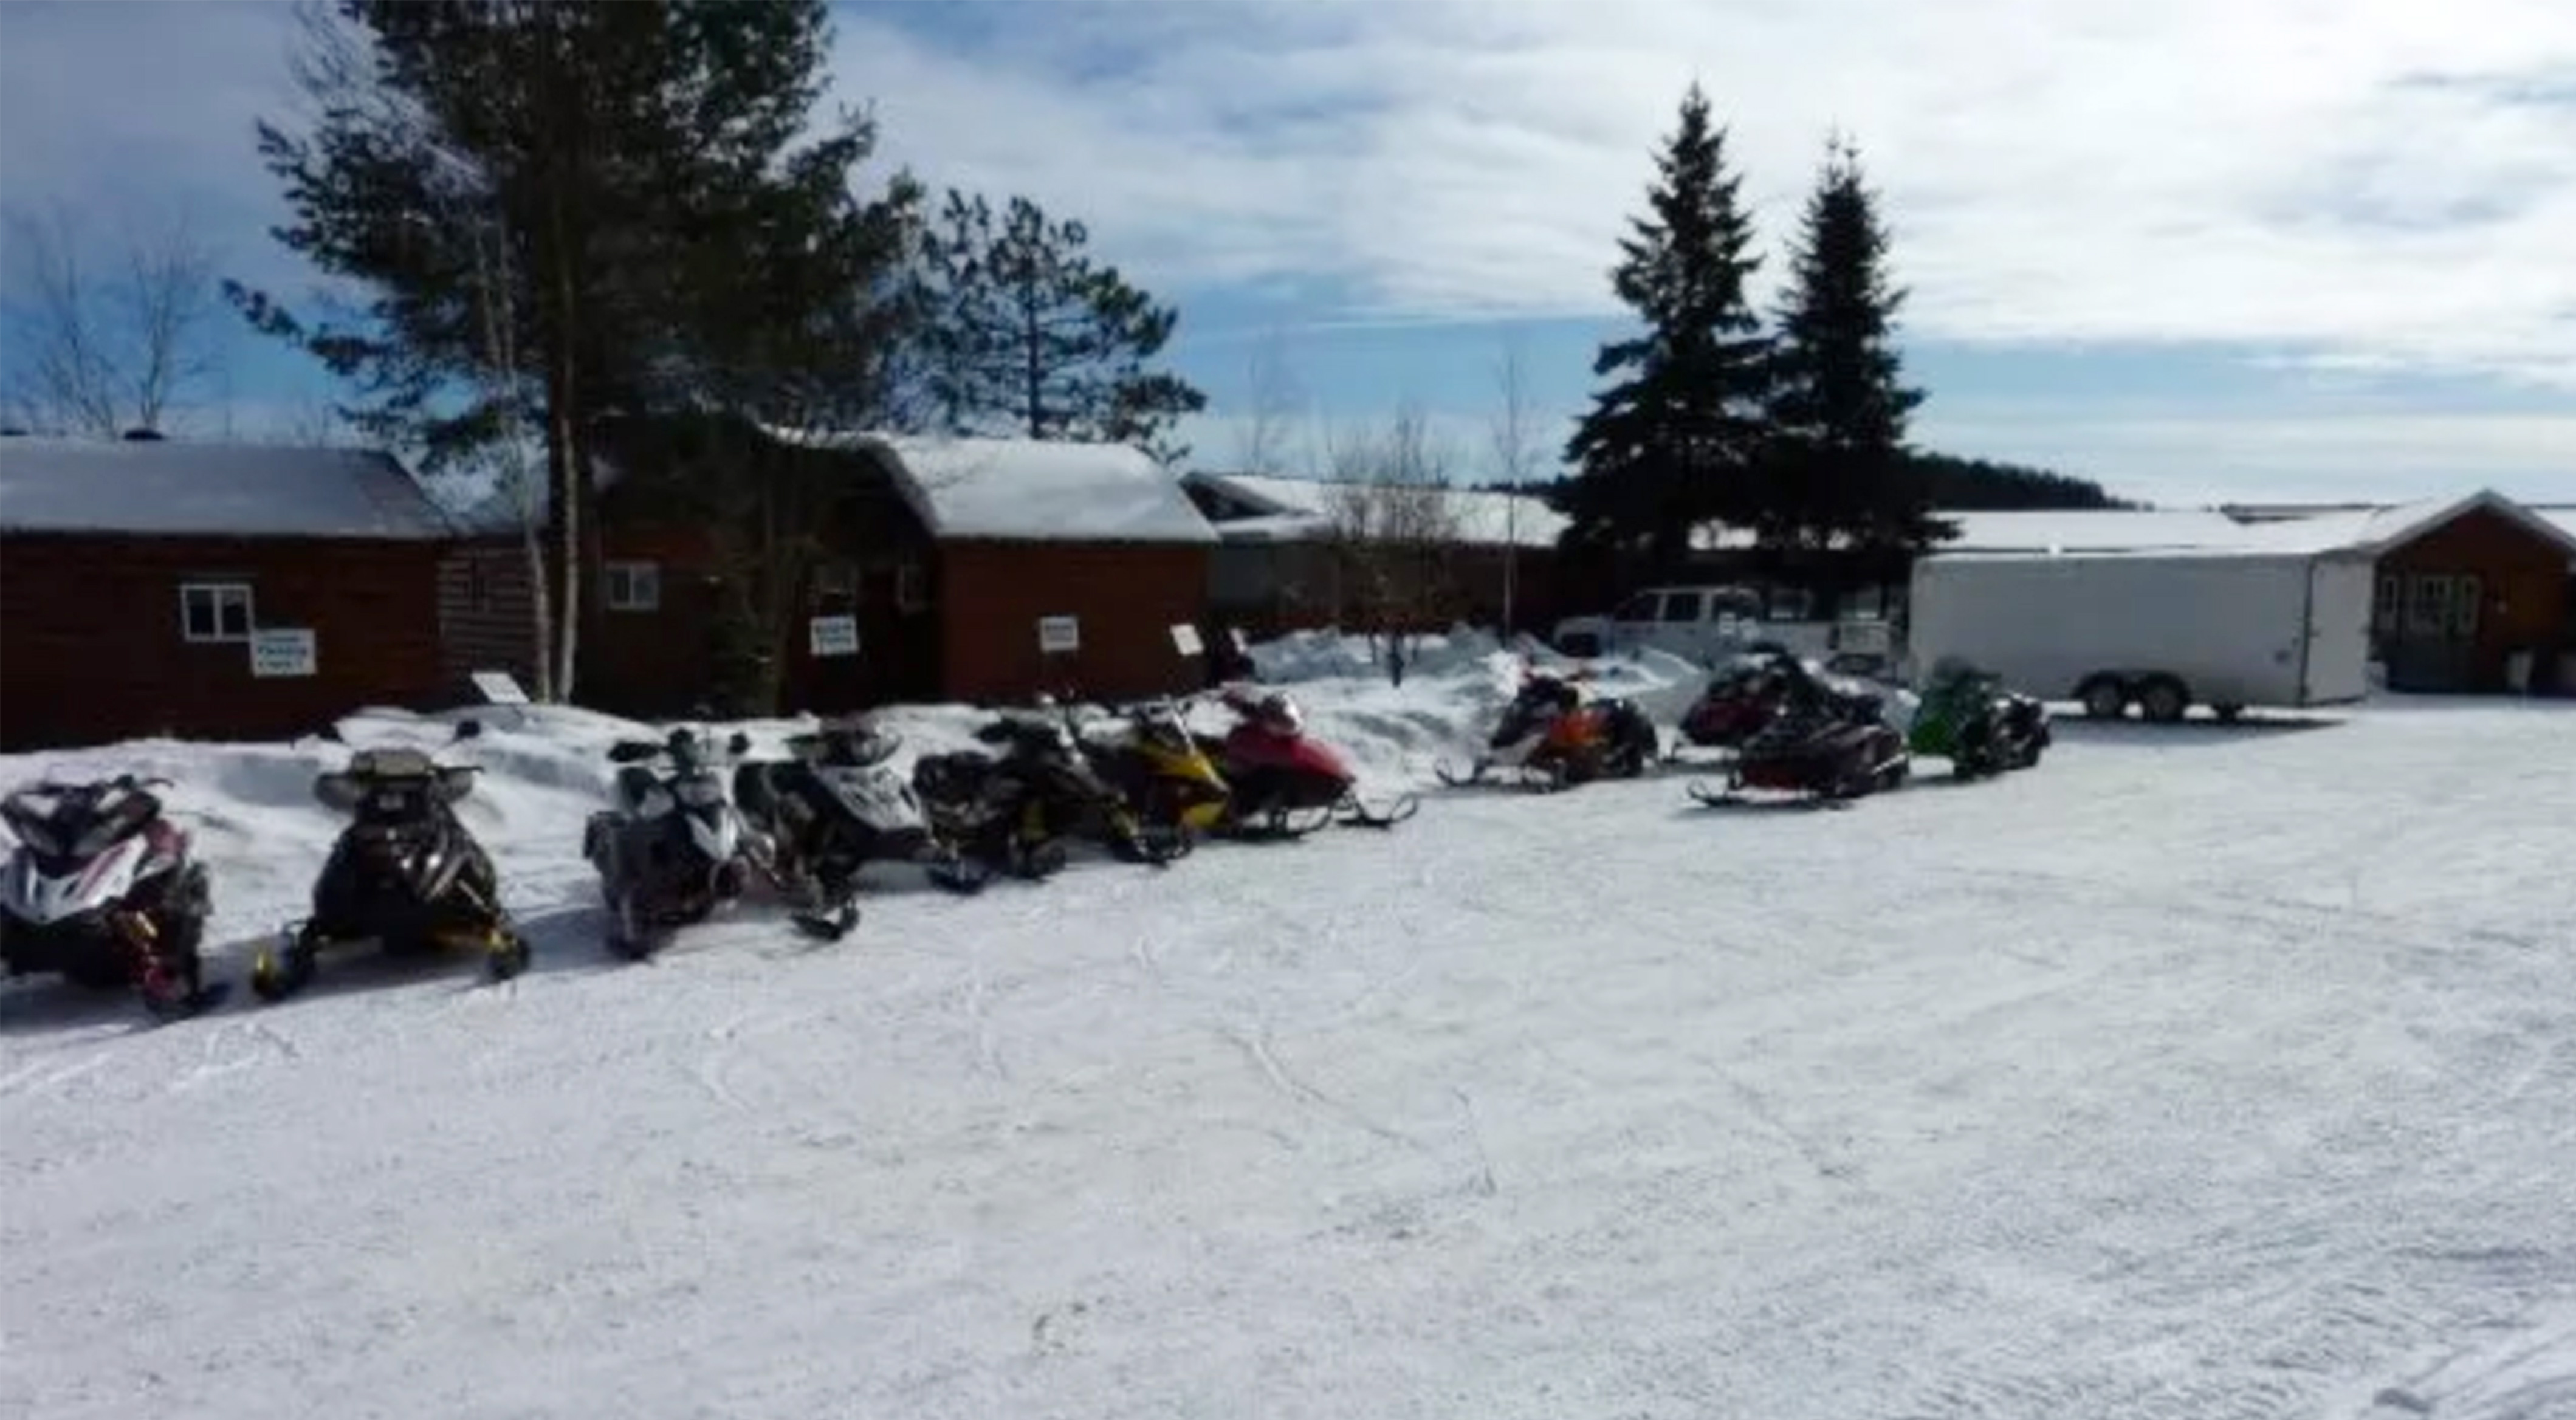 A row of snowmobiles parked in front of buildings